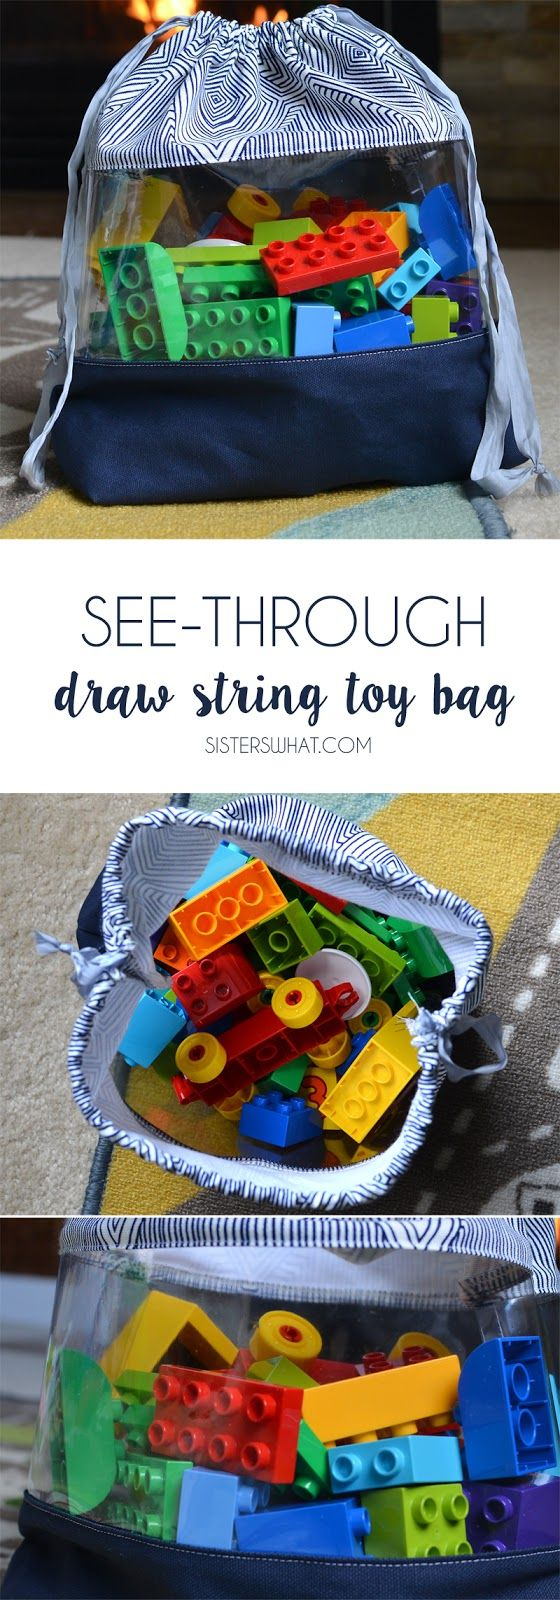 30 minute see through drawstring toy bag...perfect for organizing toys!!